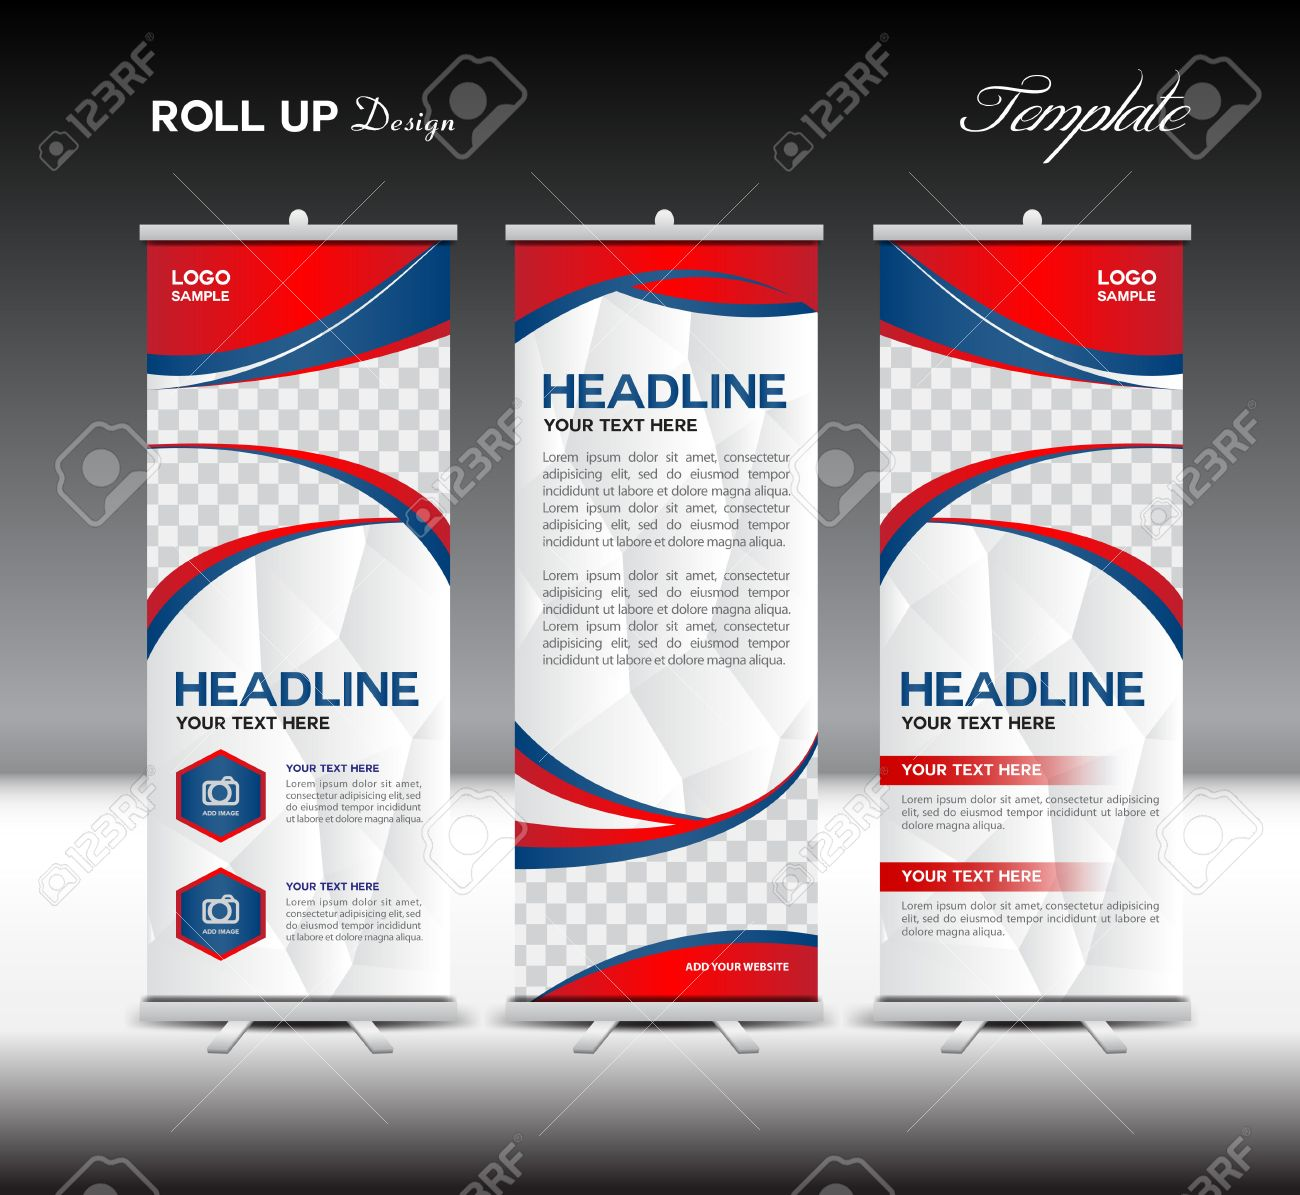 Red and blue roll up banner template illustrationbanner design red and blue roll up banner template illustrationbanner designtemplateroll up pronofoot35fo Choice Image